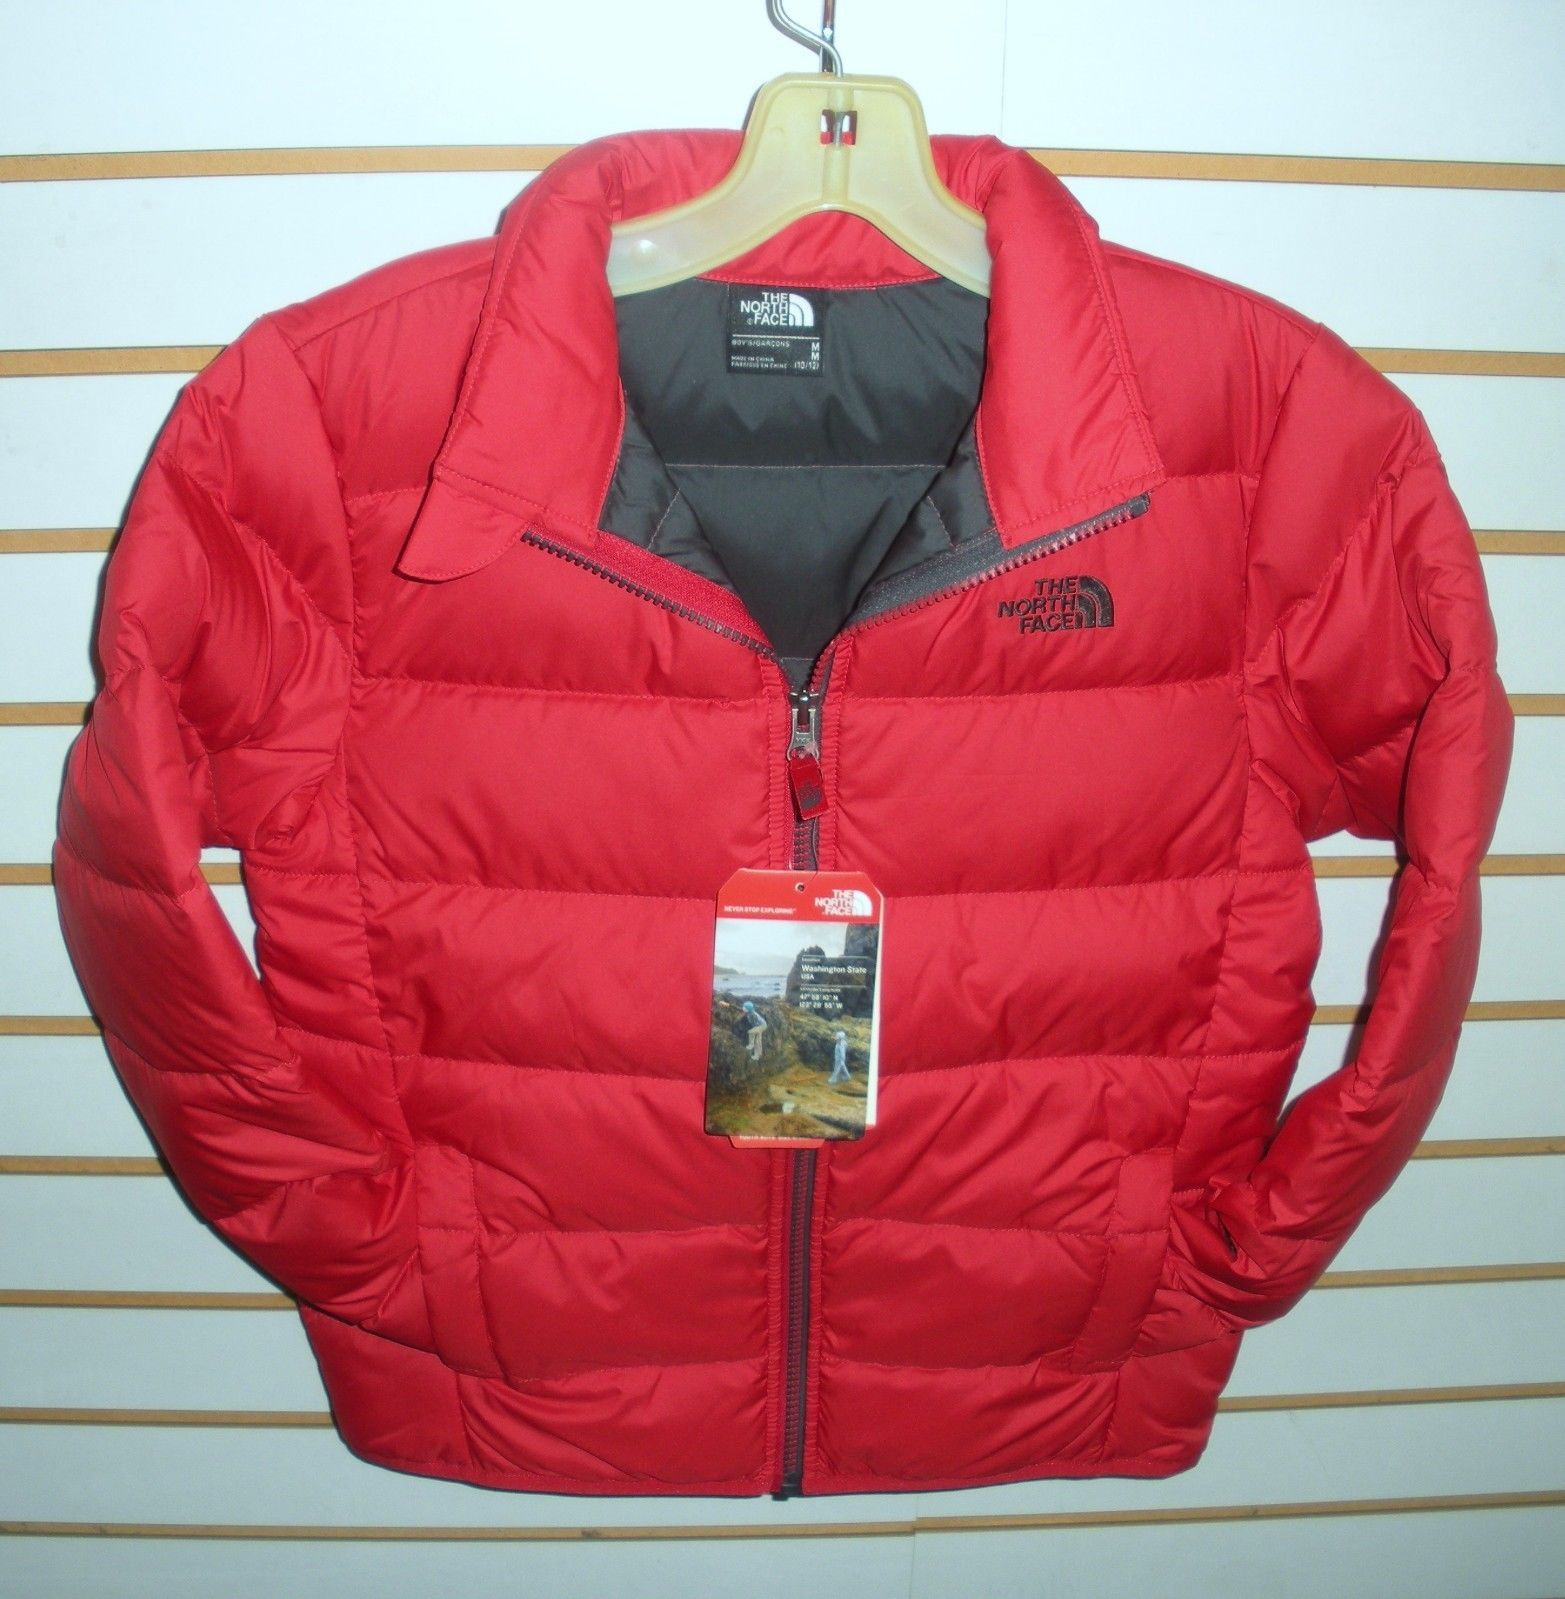 Outerwear 51933  The North Face Boys Andes Down Winter Jacket -Chq6- Tnf  Red - S 6334a372d